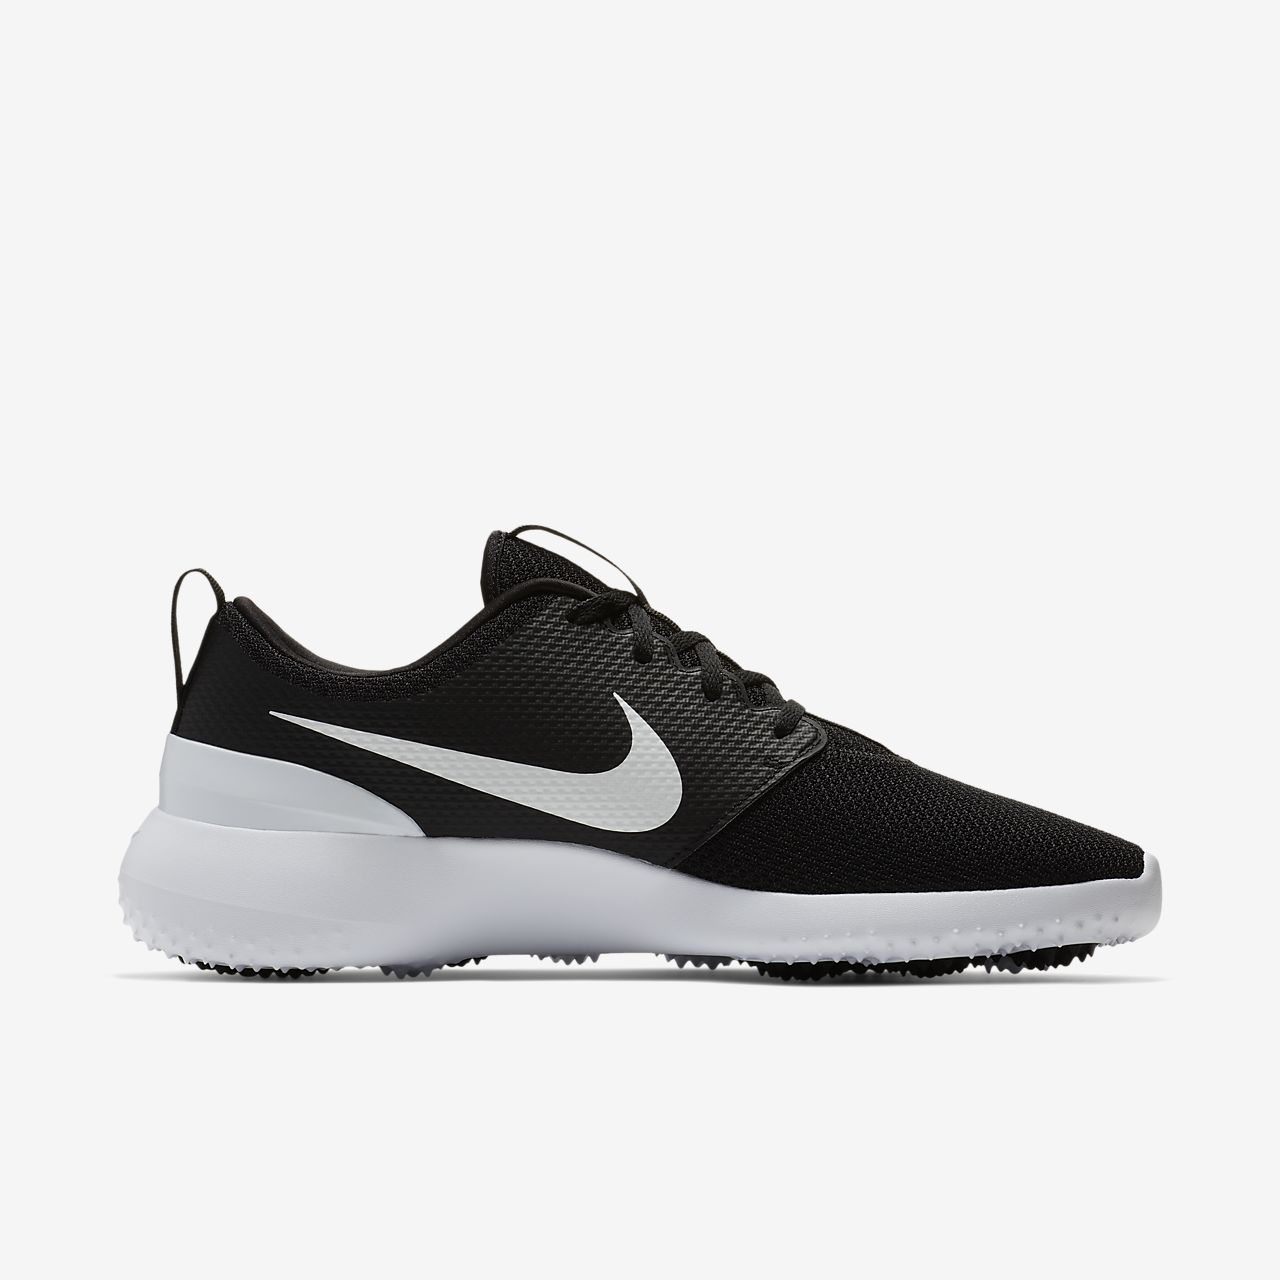 f44f270abc55 Nike Roshe G Men s Golf Shoe. Nike.com